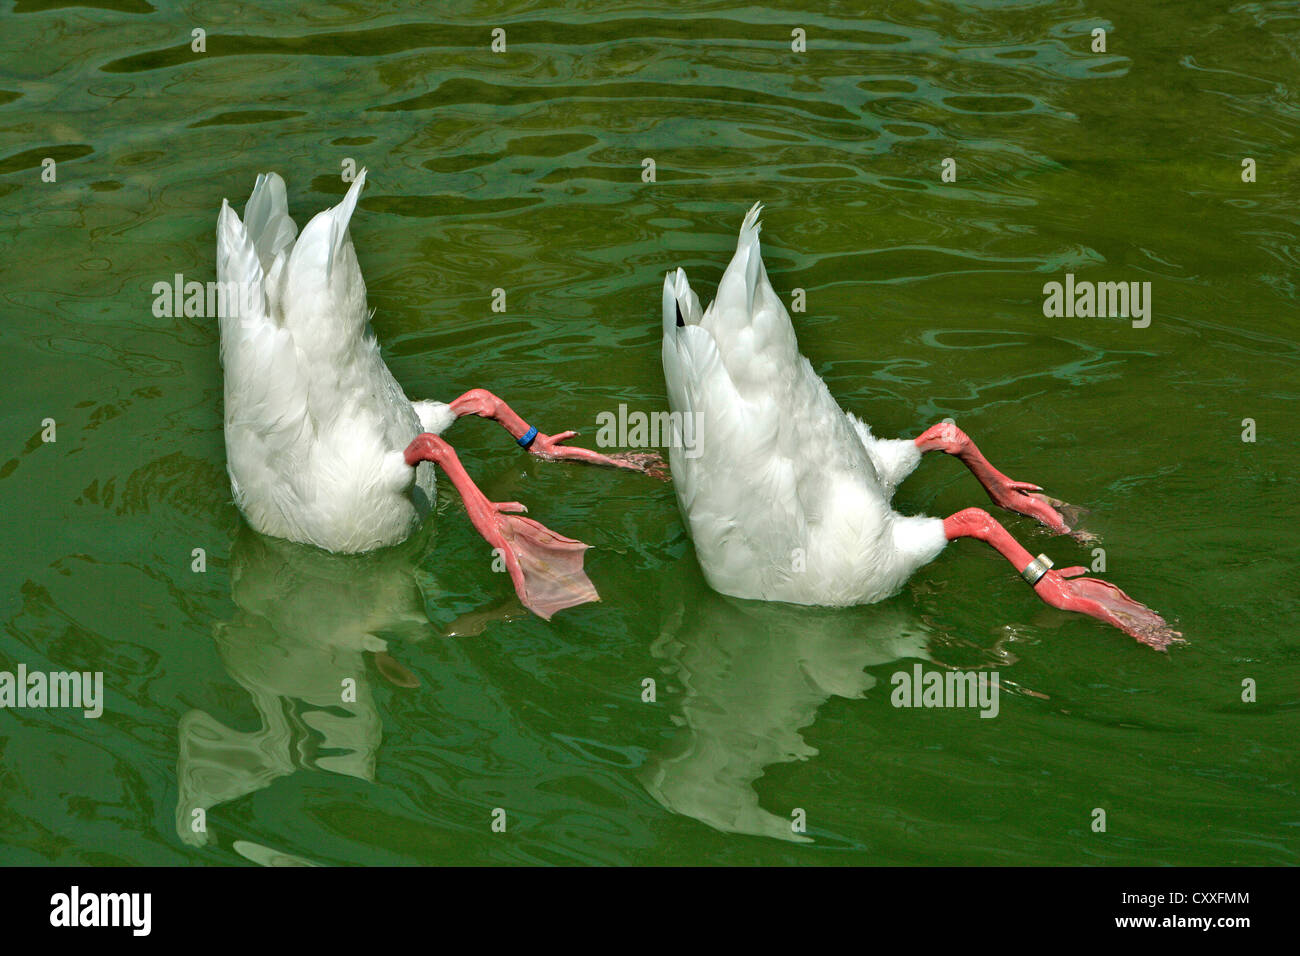 Two white ducks with heads under water, synchronized swimming - Stock Image